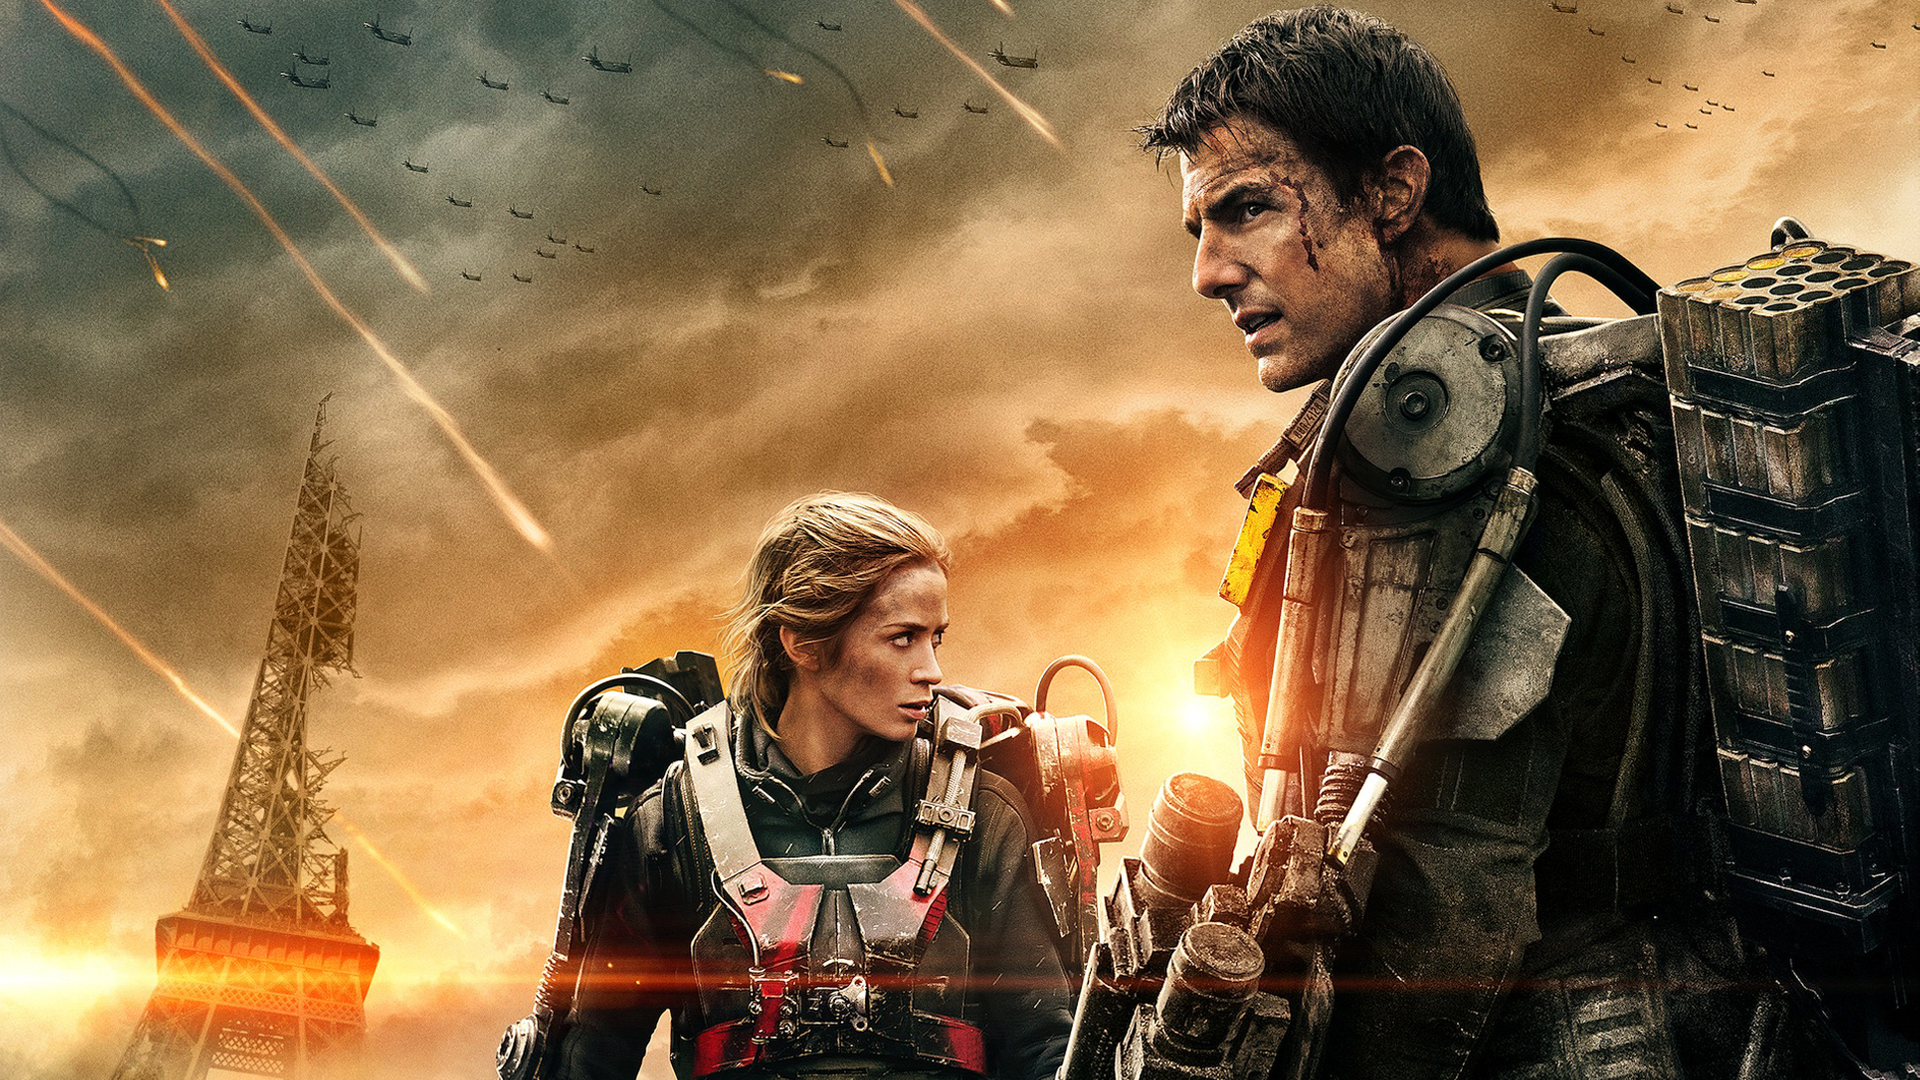 and tom cruise as cage in edge of tomorrow 2014 hd action sci fi movie ...